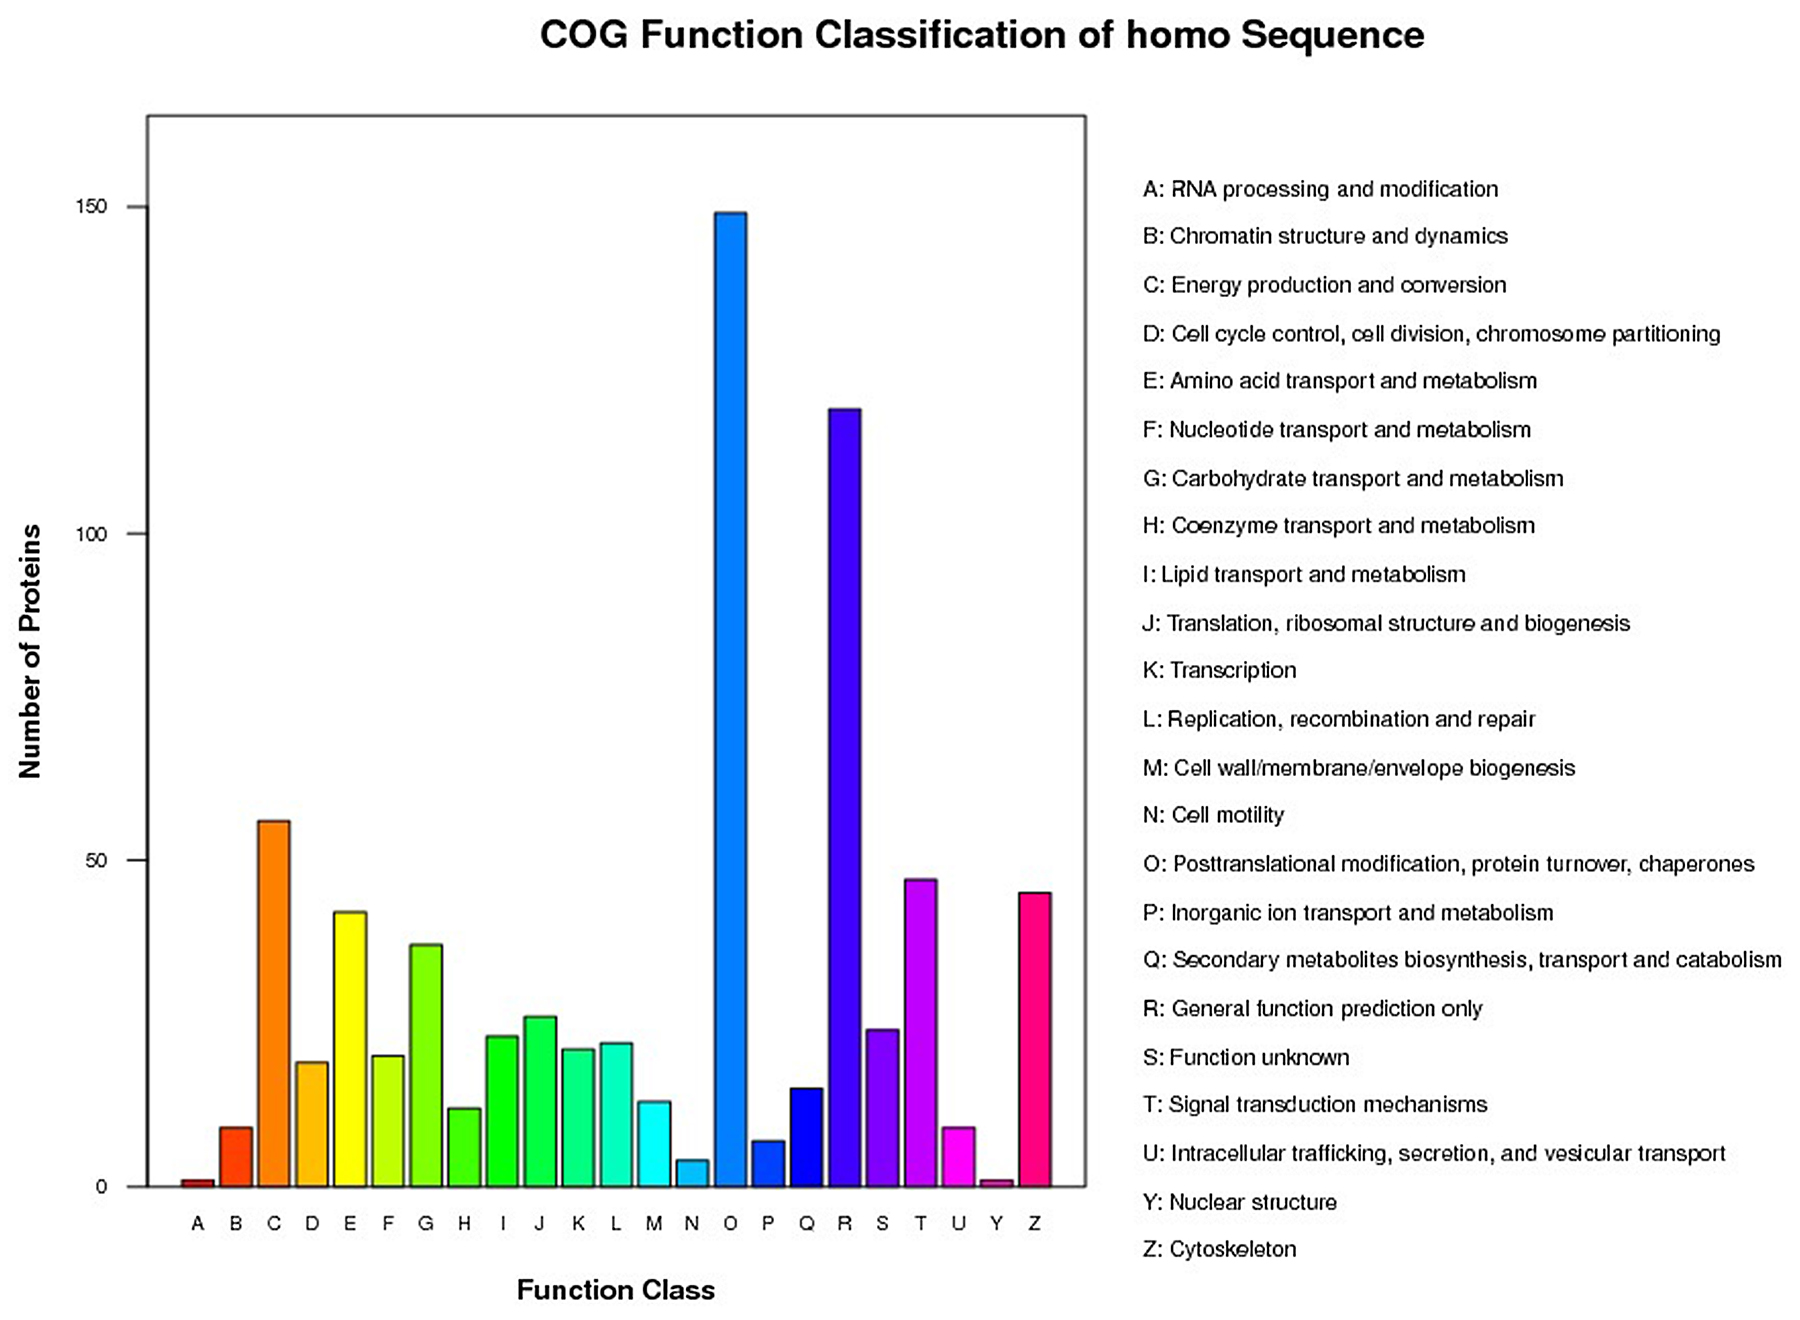 Histogram of the GOG Analysis.